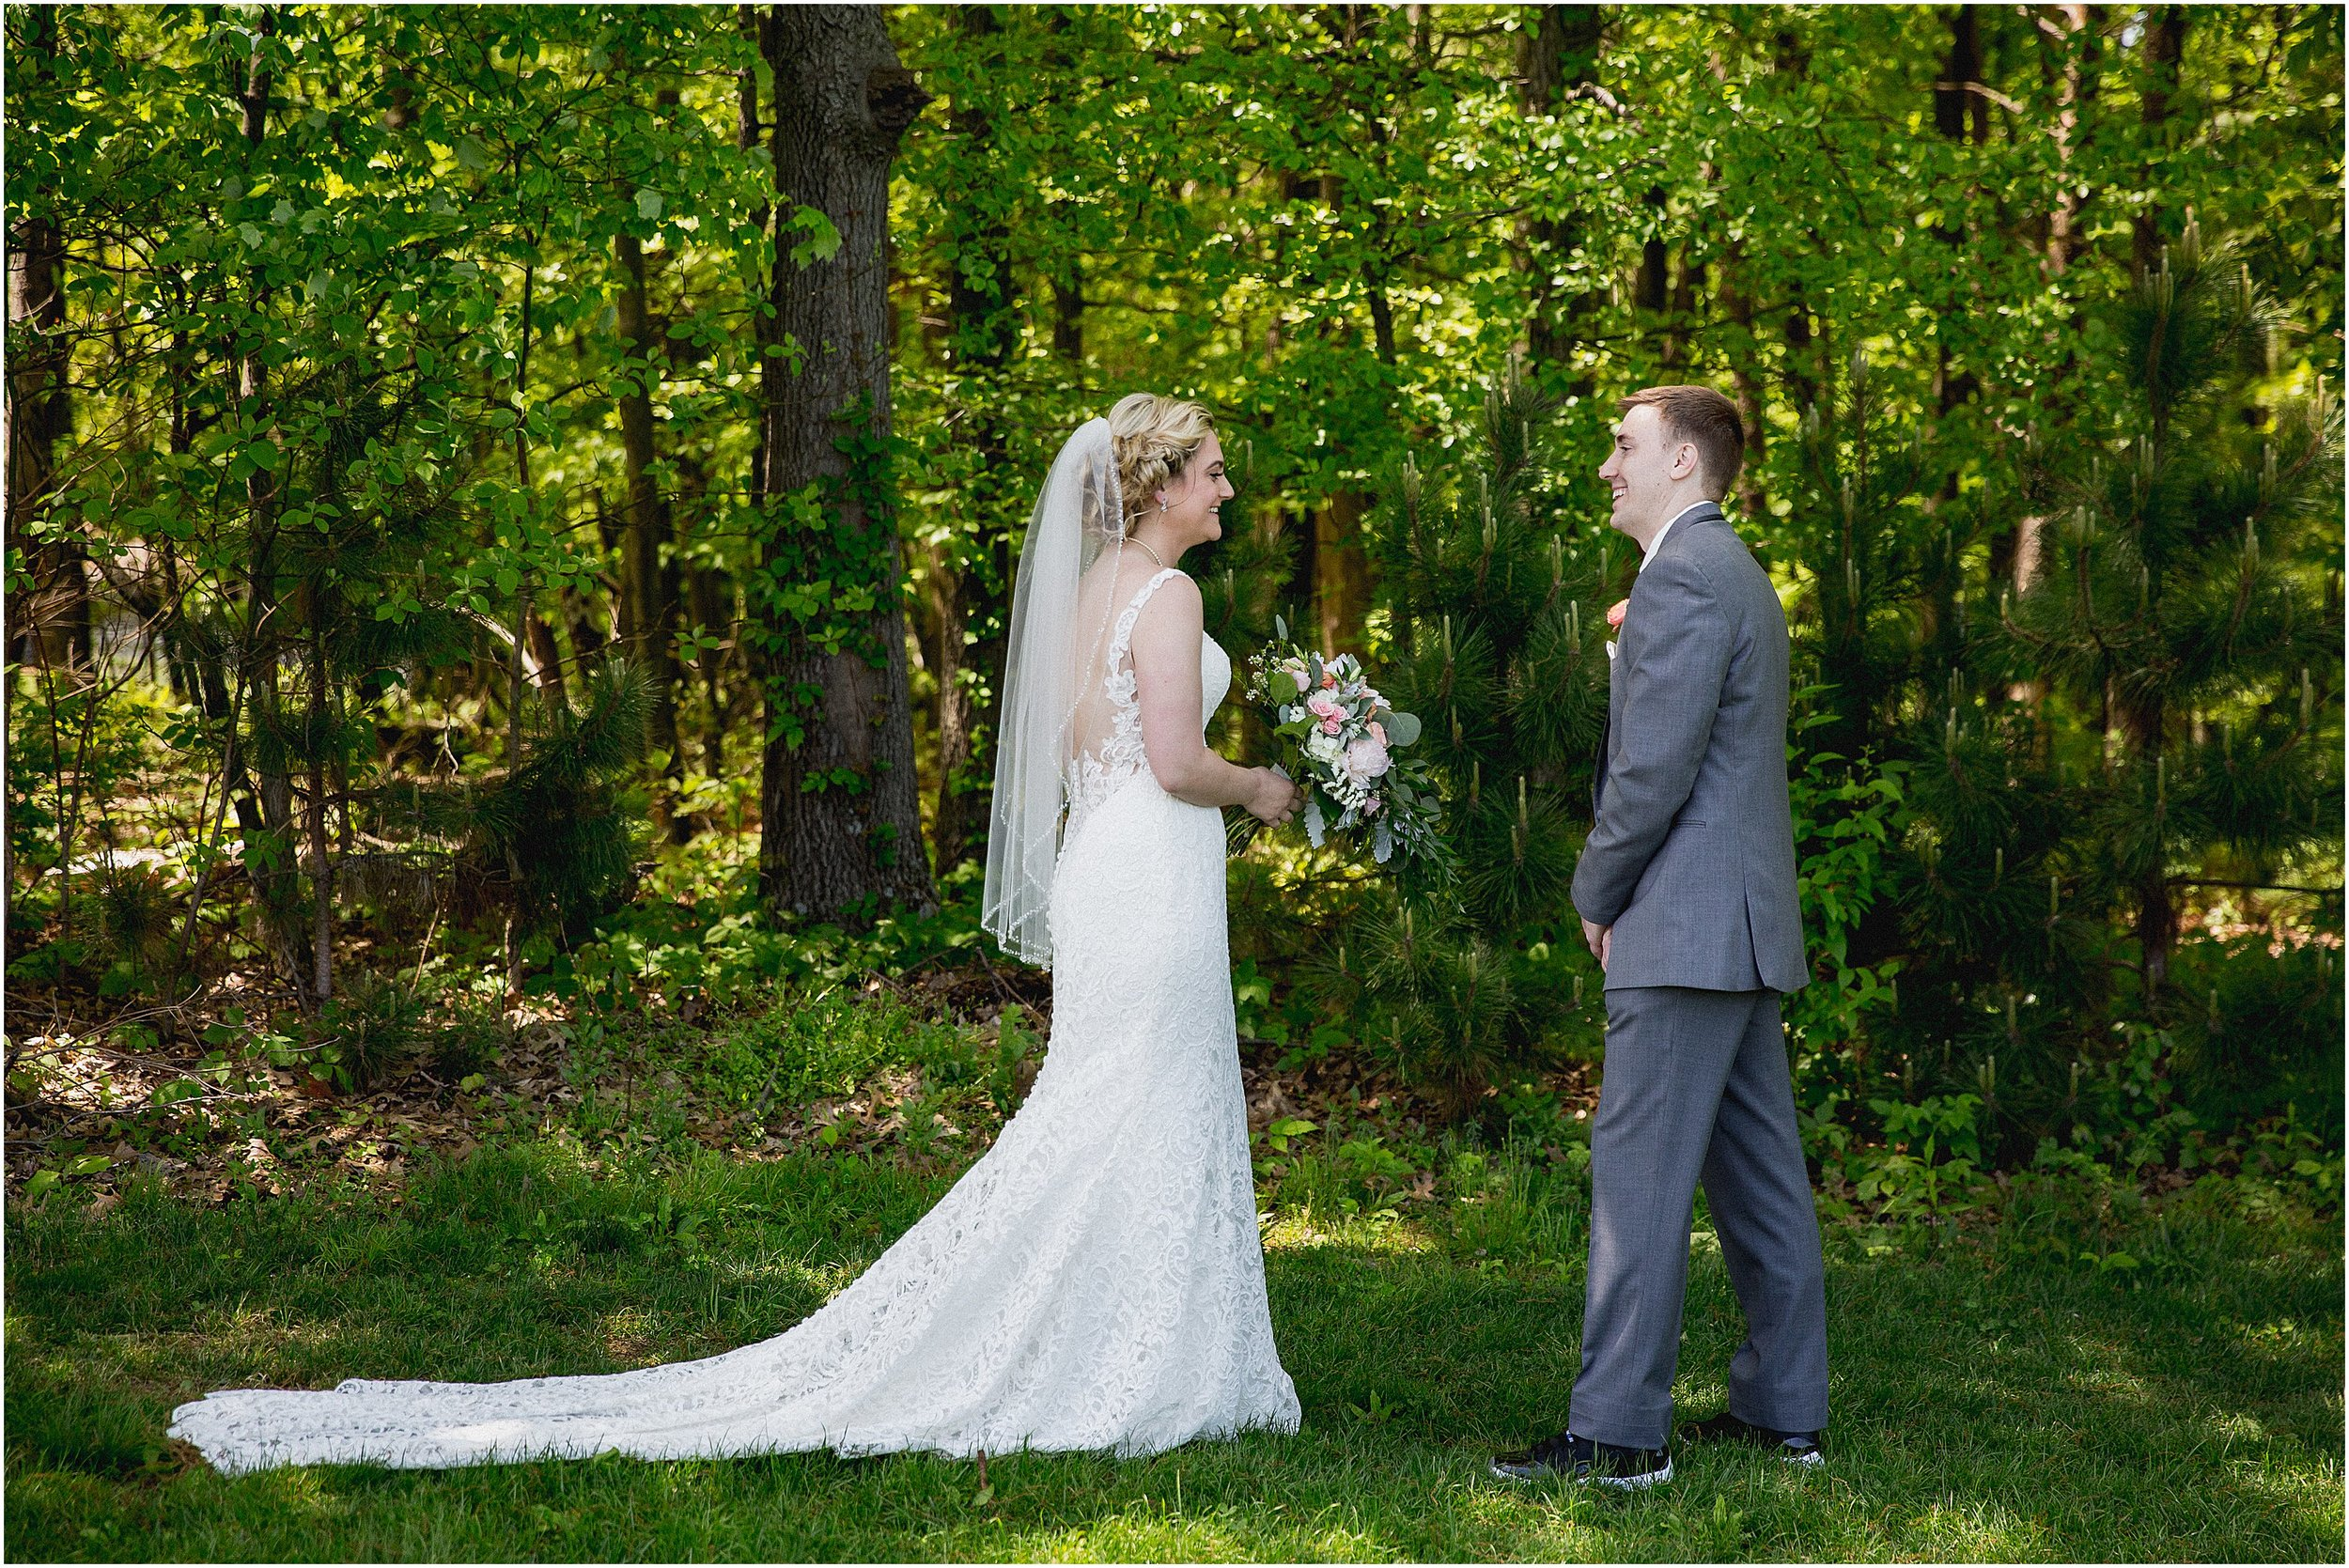 Whispering_Oaks_Wedding_Photographer_0436.jpg